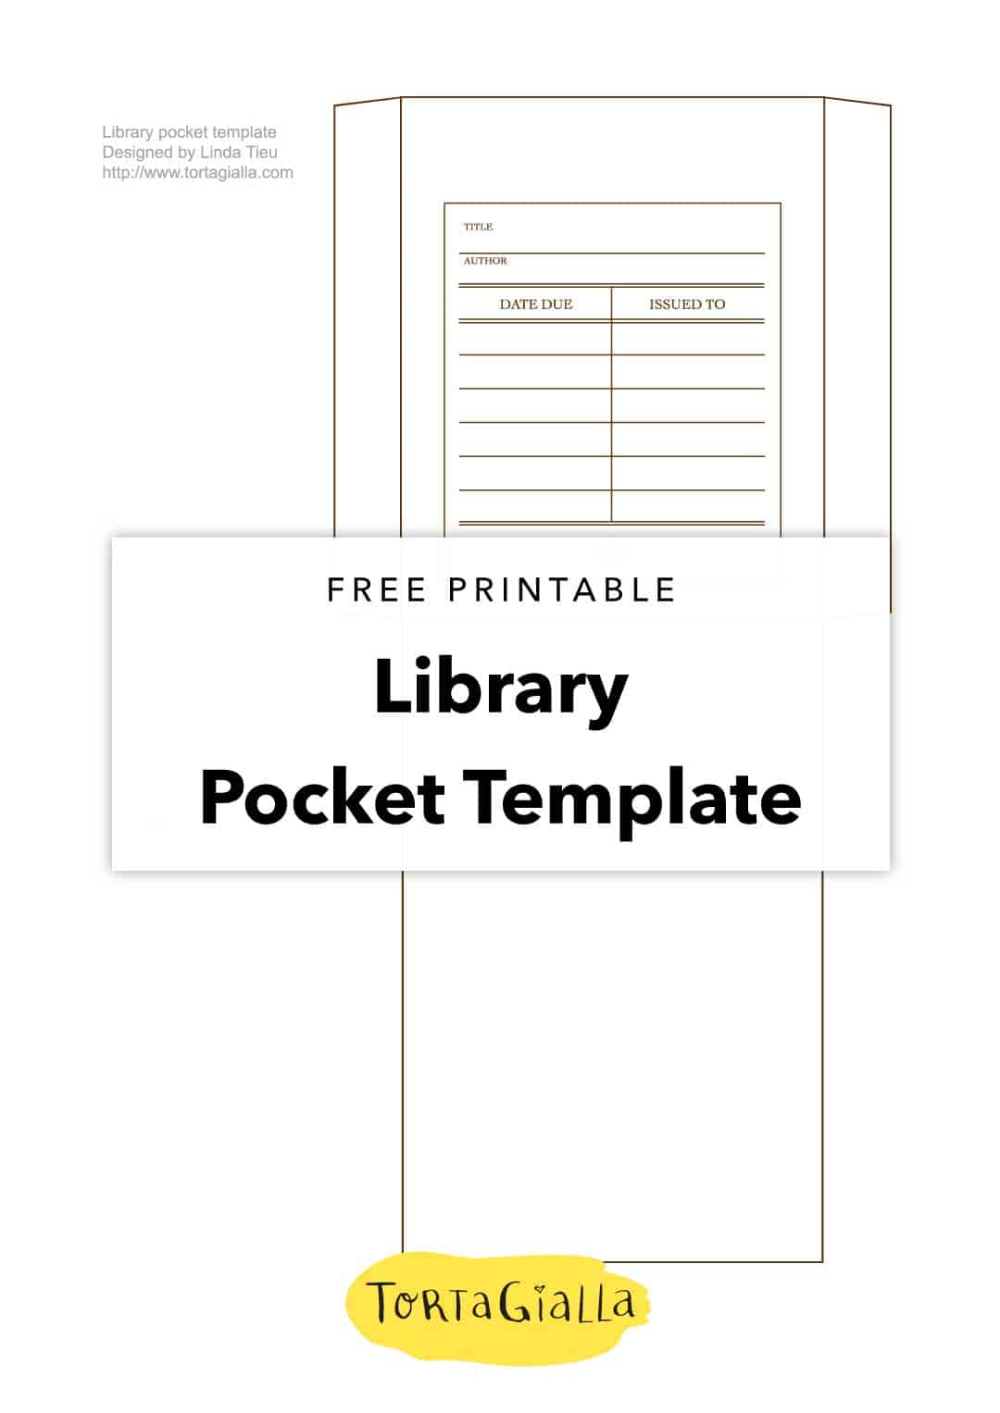 Printable Library Card Template Free Download Tortagialla Card Templates Free Library Card Card Template